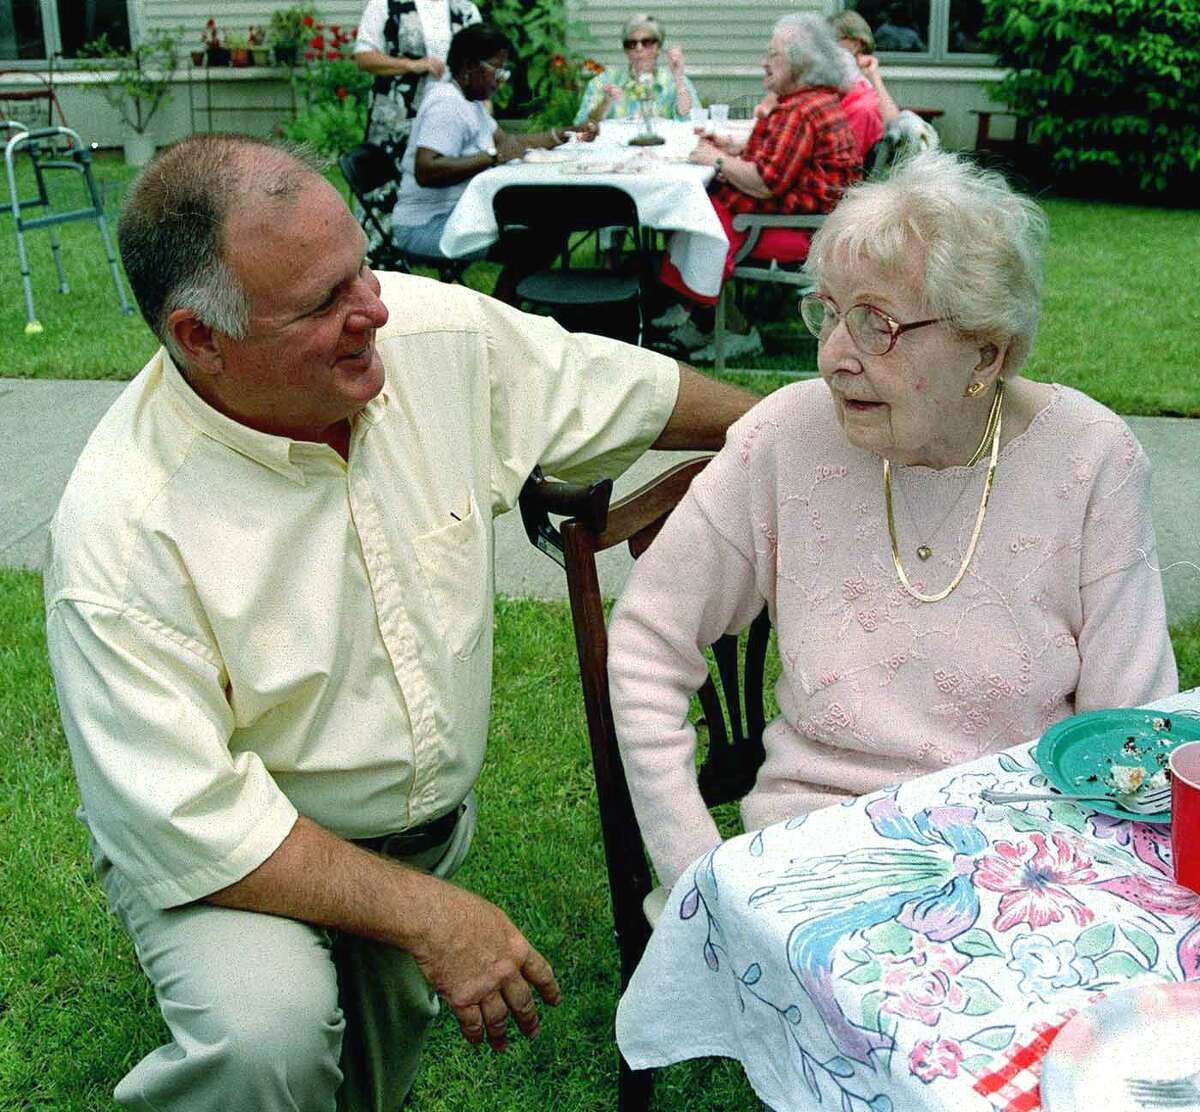 Brooks Temple shares a chat with Chestnut Grove resident Annanda Devlin in an image from 2011.